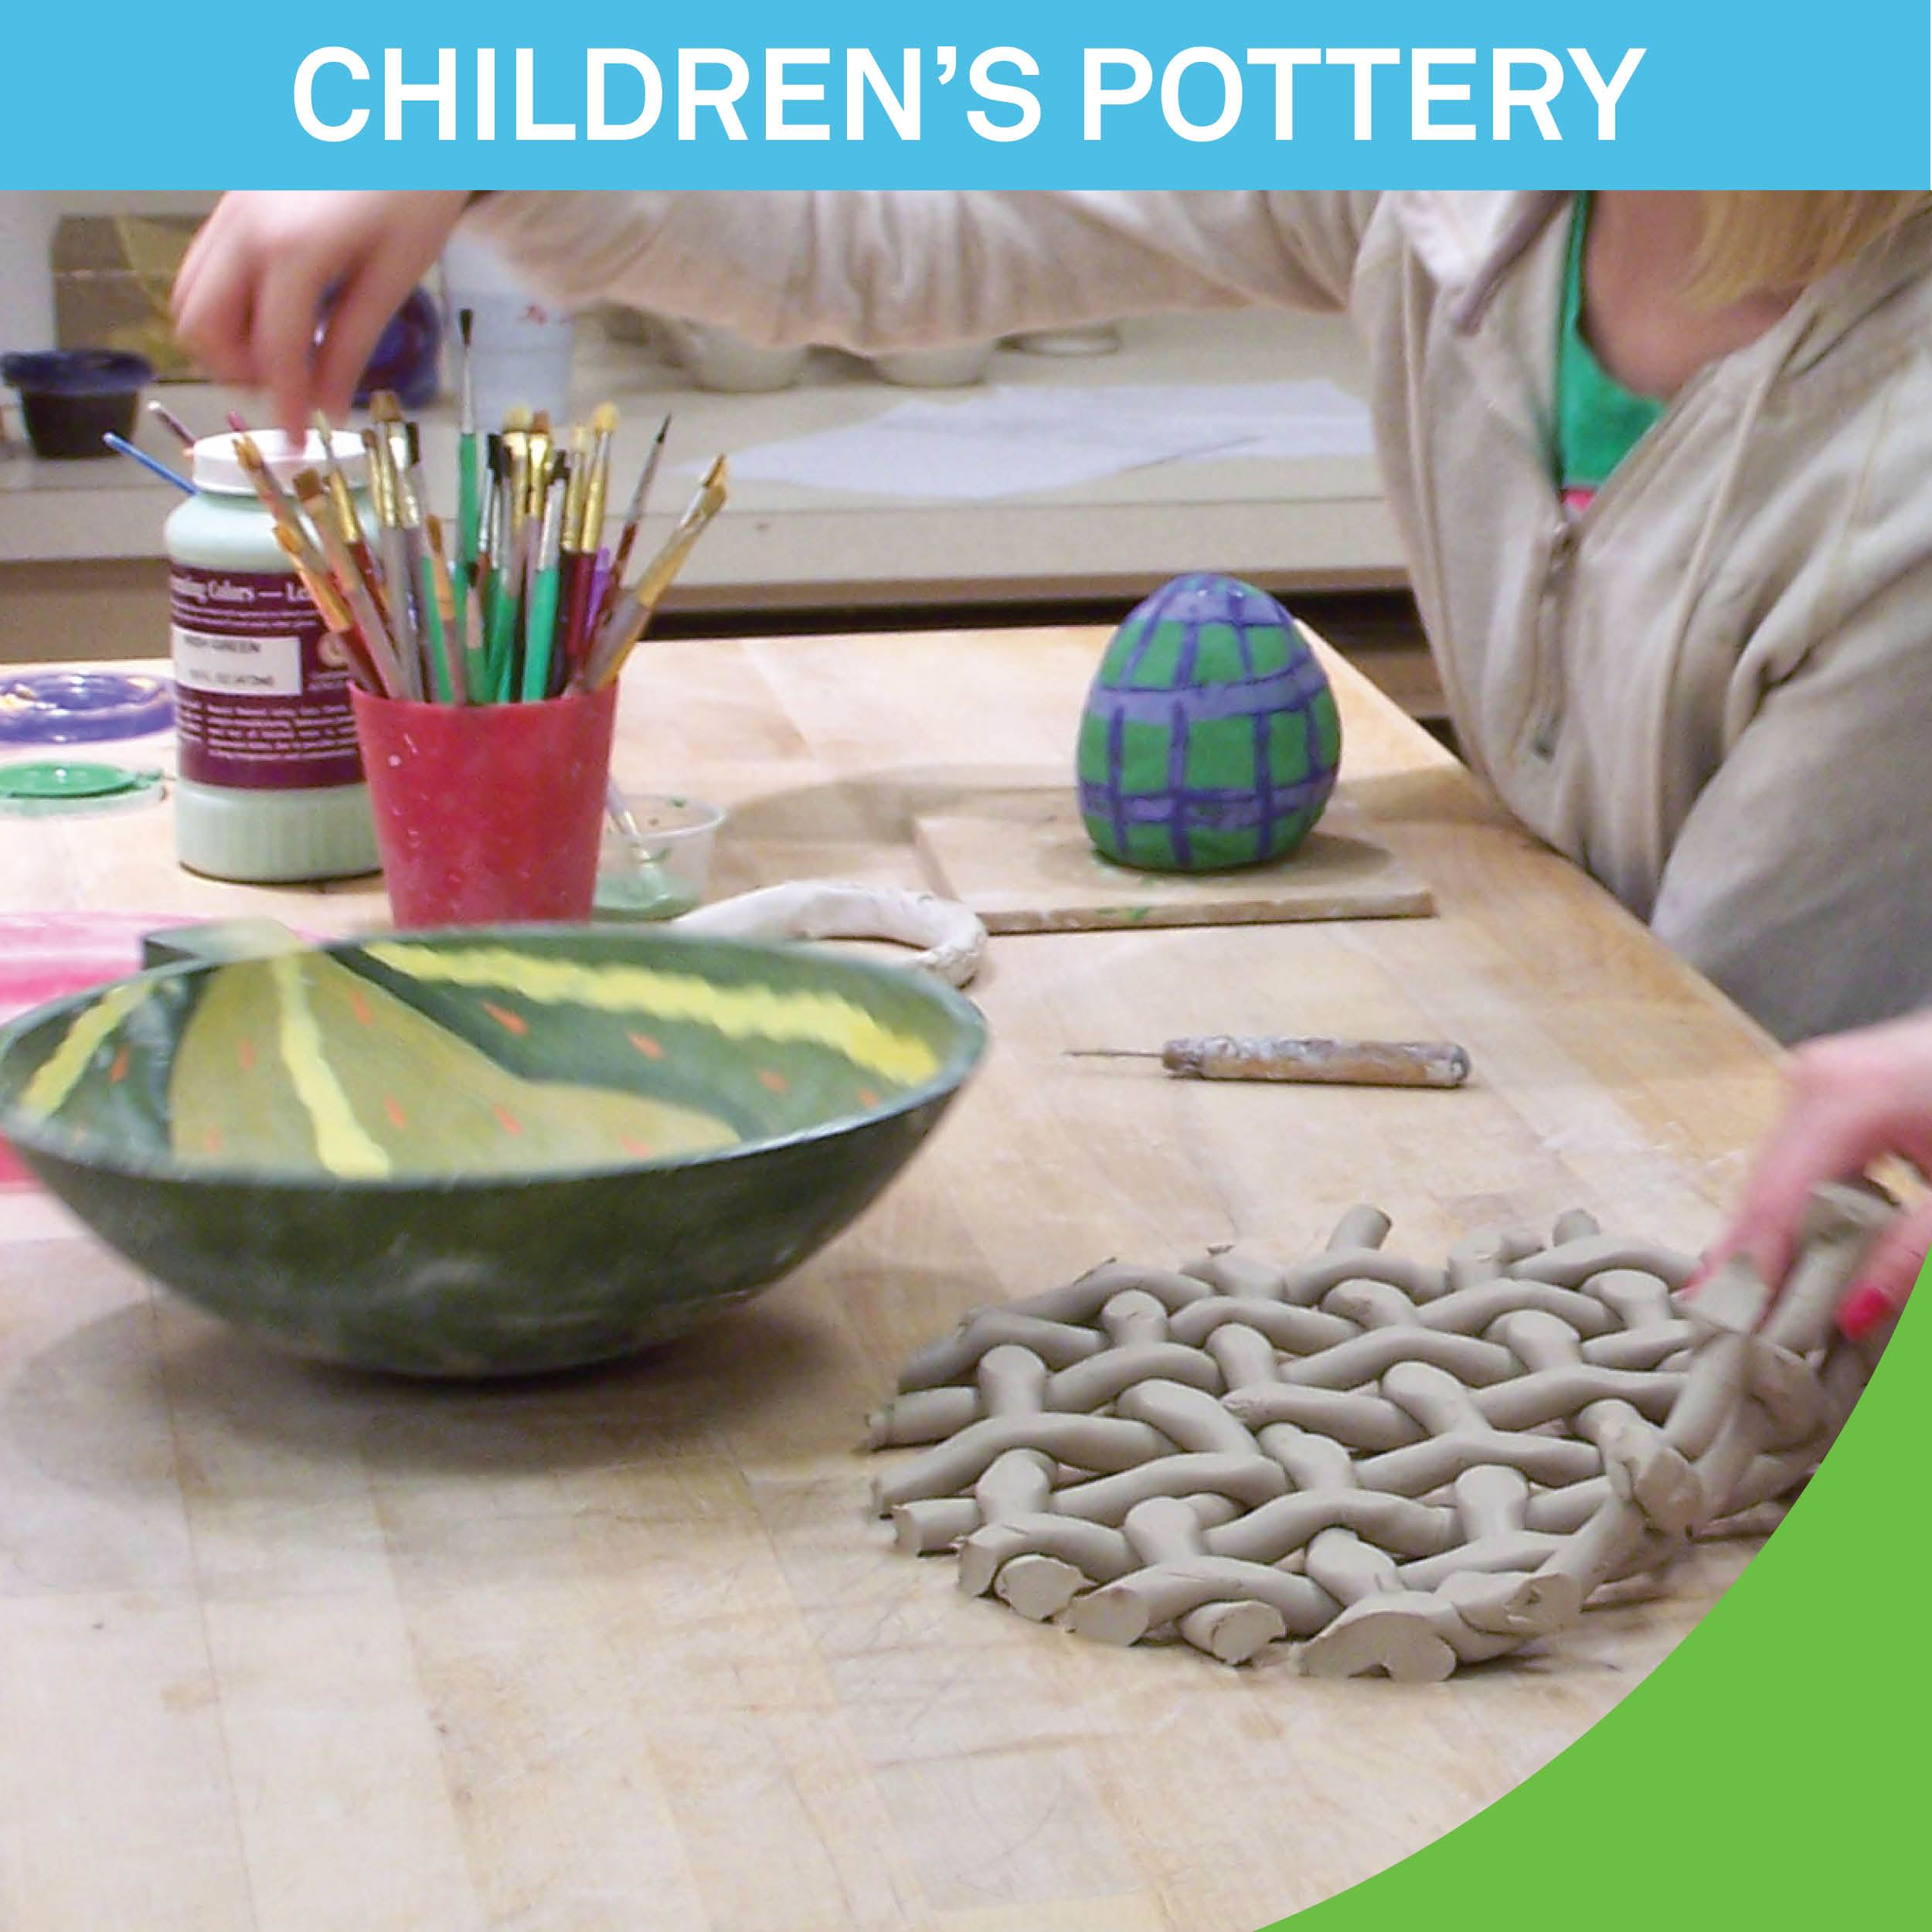 childrens pottery class offered